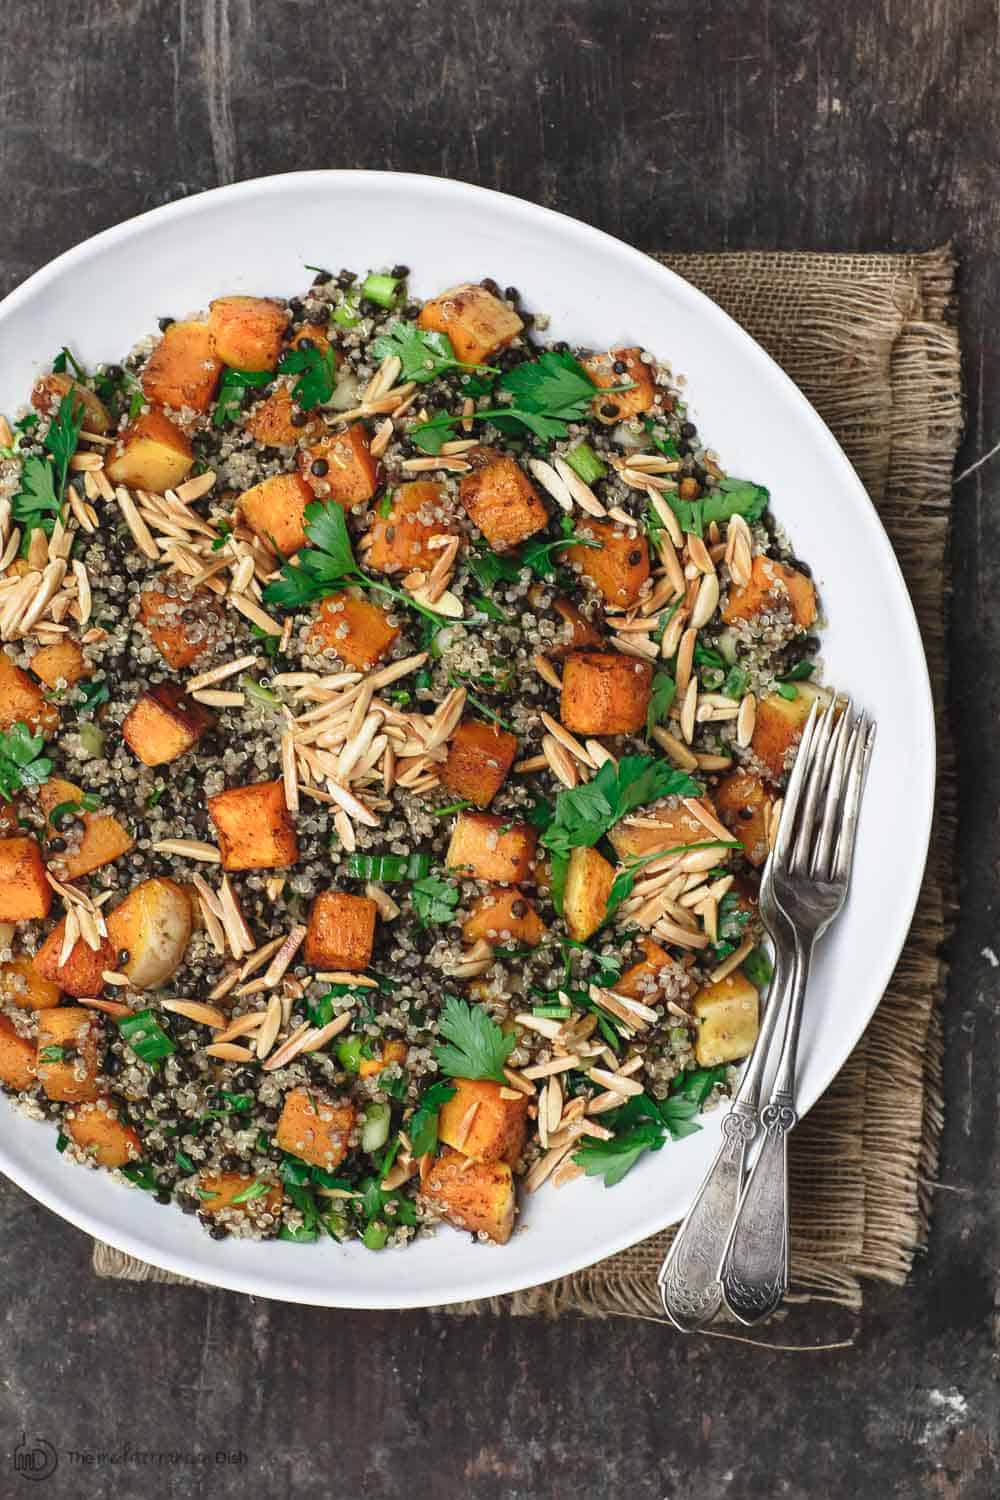 Easy Butternut Squash Recipe With Lentils And Quinoa The Mediterranean Dish